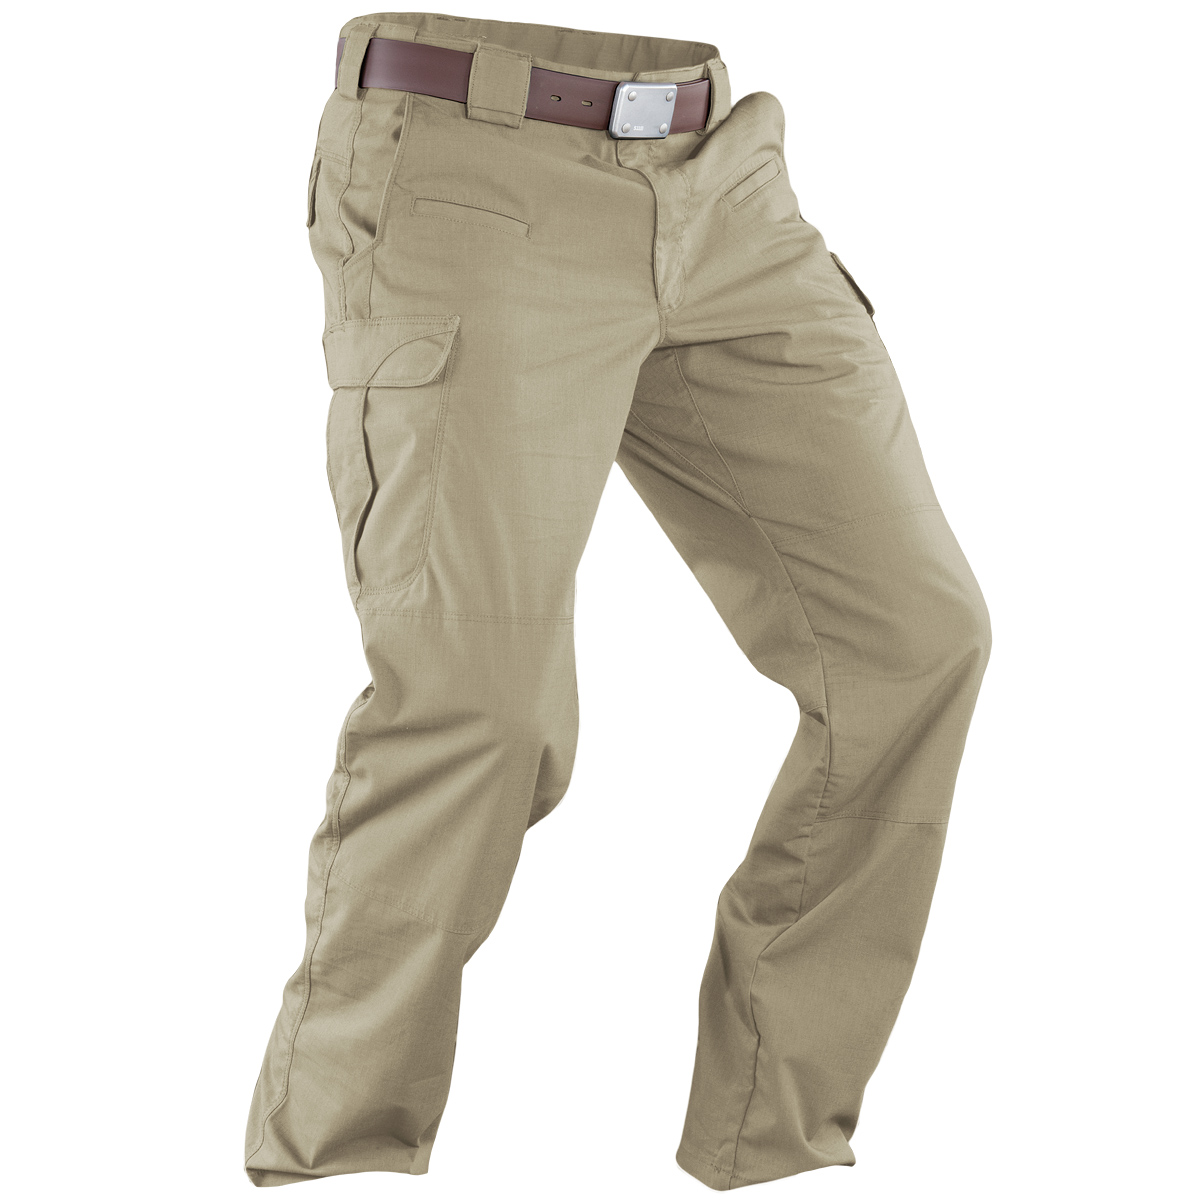 CHINO PANTS FOR MEN The refined, polished cousin of the khaki – look no further than chino pants. Perfect for business casual (and beyond), they're traditionally .